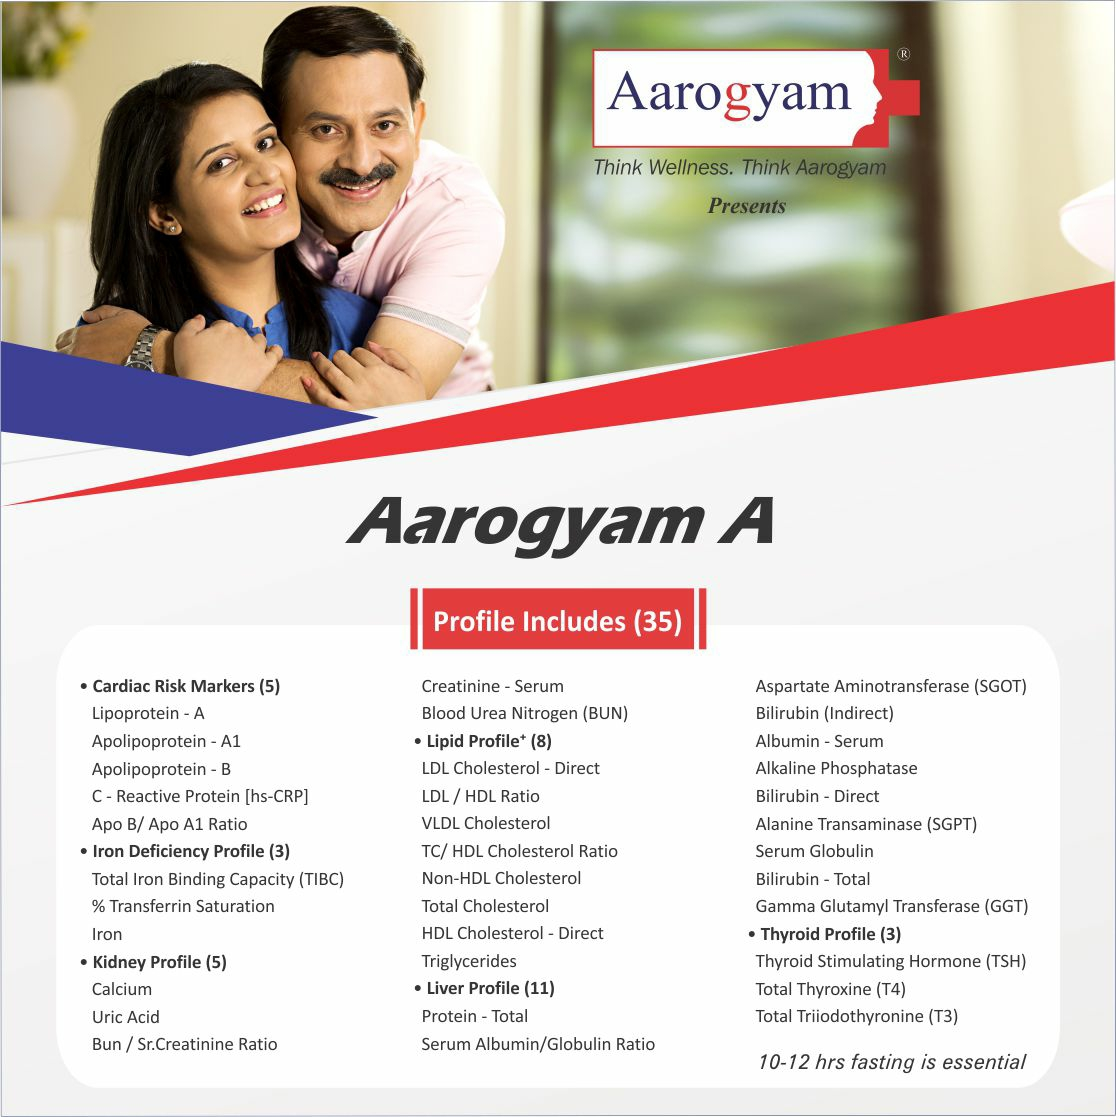 AAROGYAM A in Bangalore @₹790 Only | 35 Tests | Thyrocare